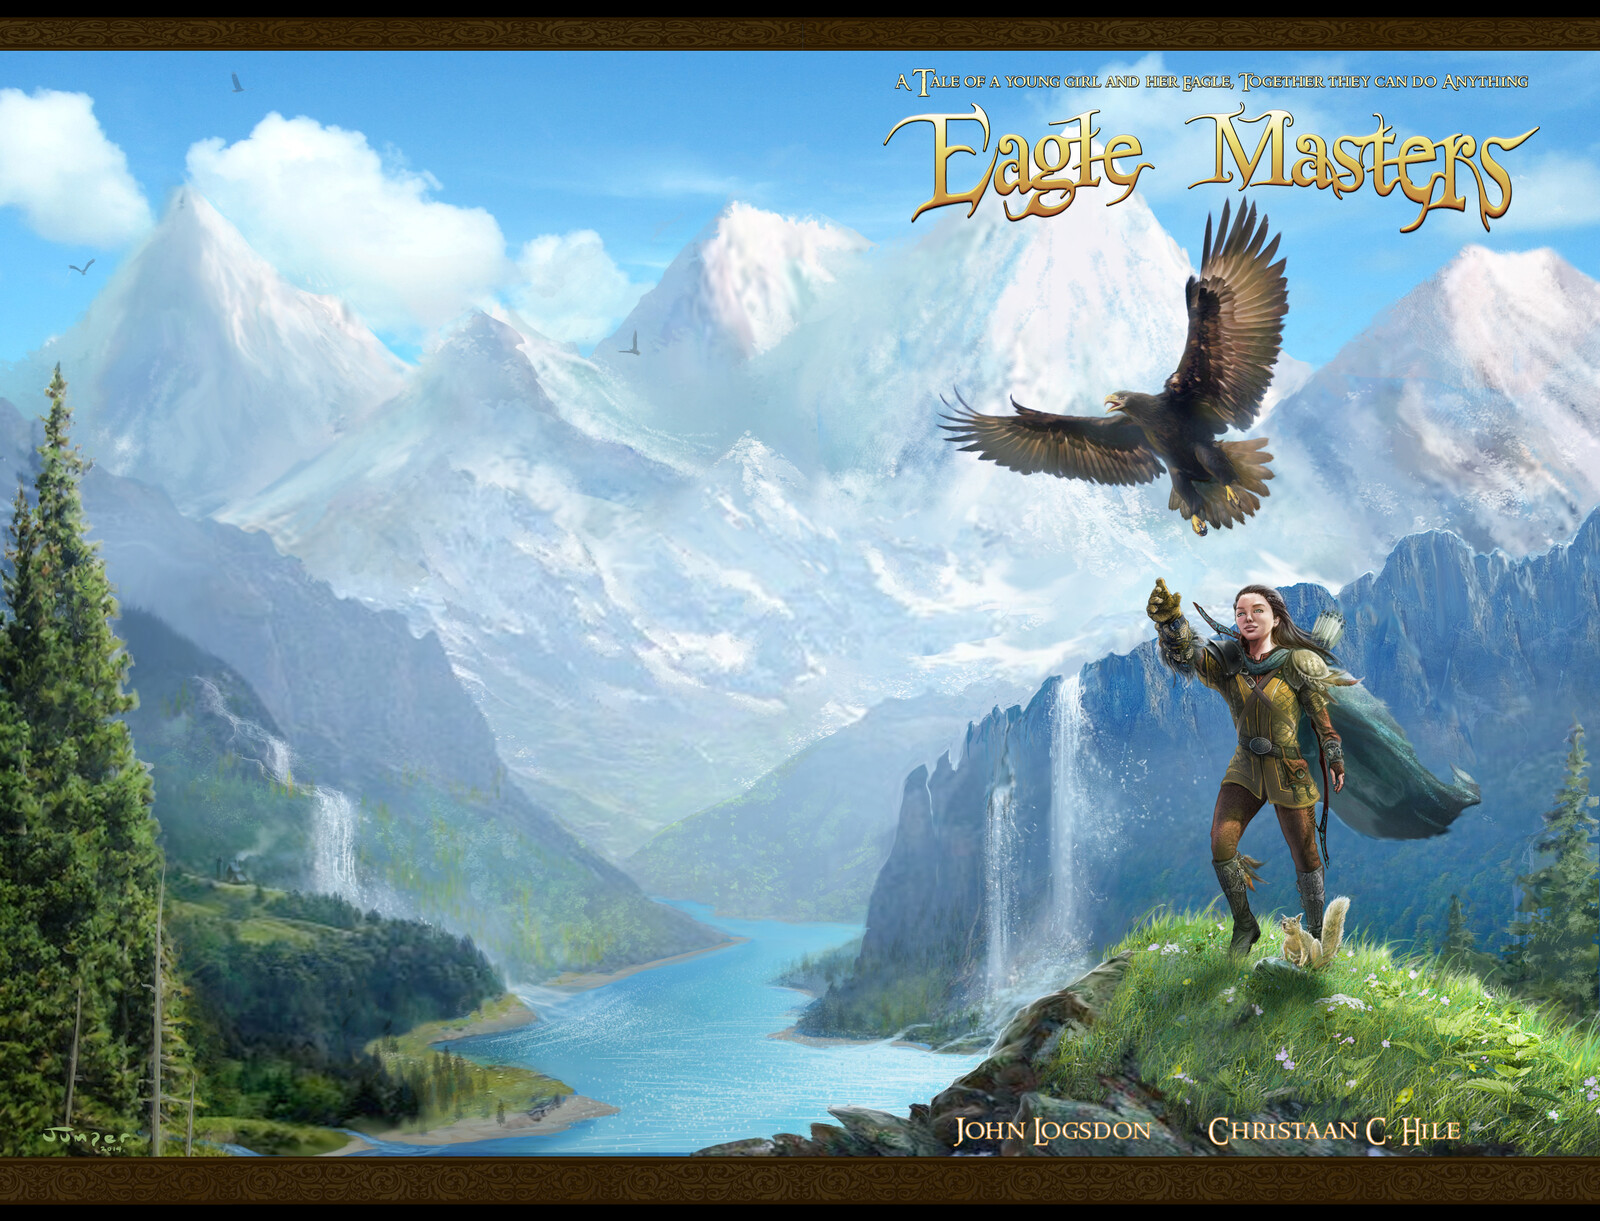 Eagle Masters Book cover